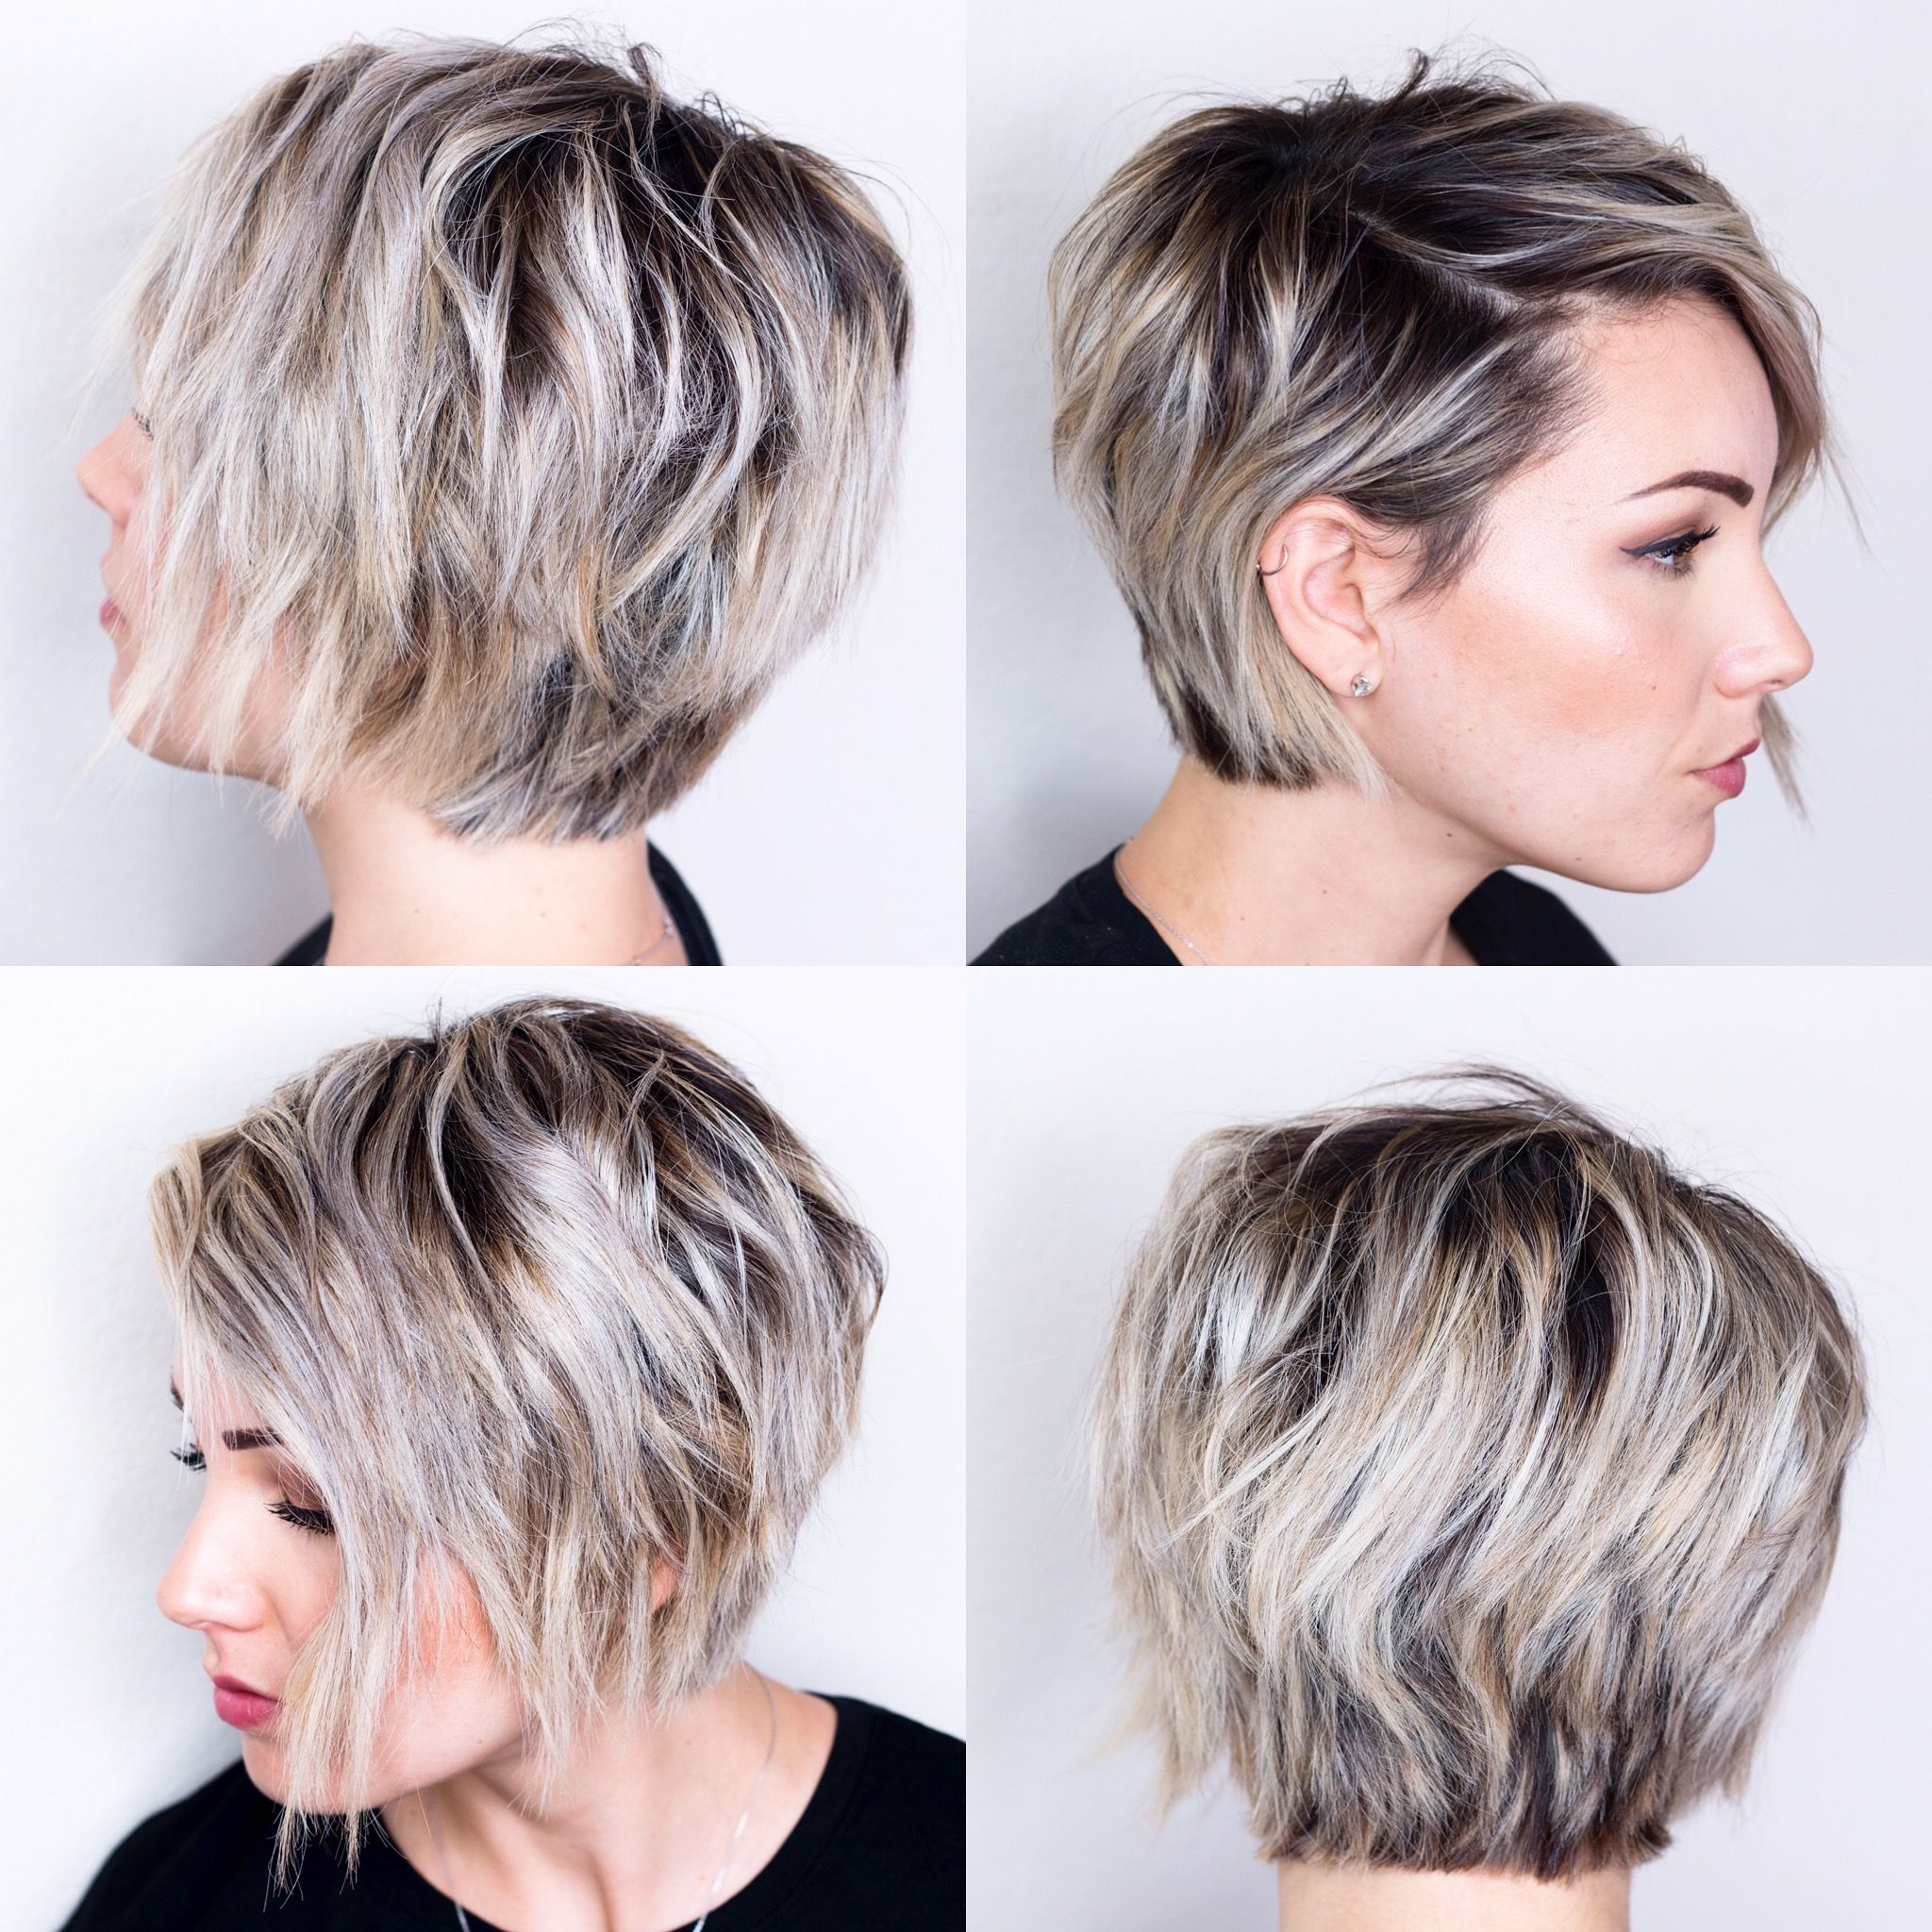 360 View Of Short Hair | H A I R In 2018 | Pinterest | Short Hair Regarding Short Haircuts For Women With Oval Faces (View 2 of 25)